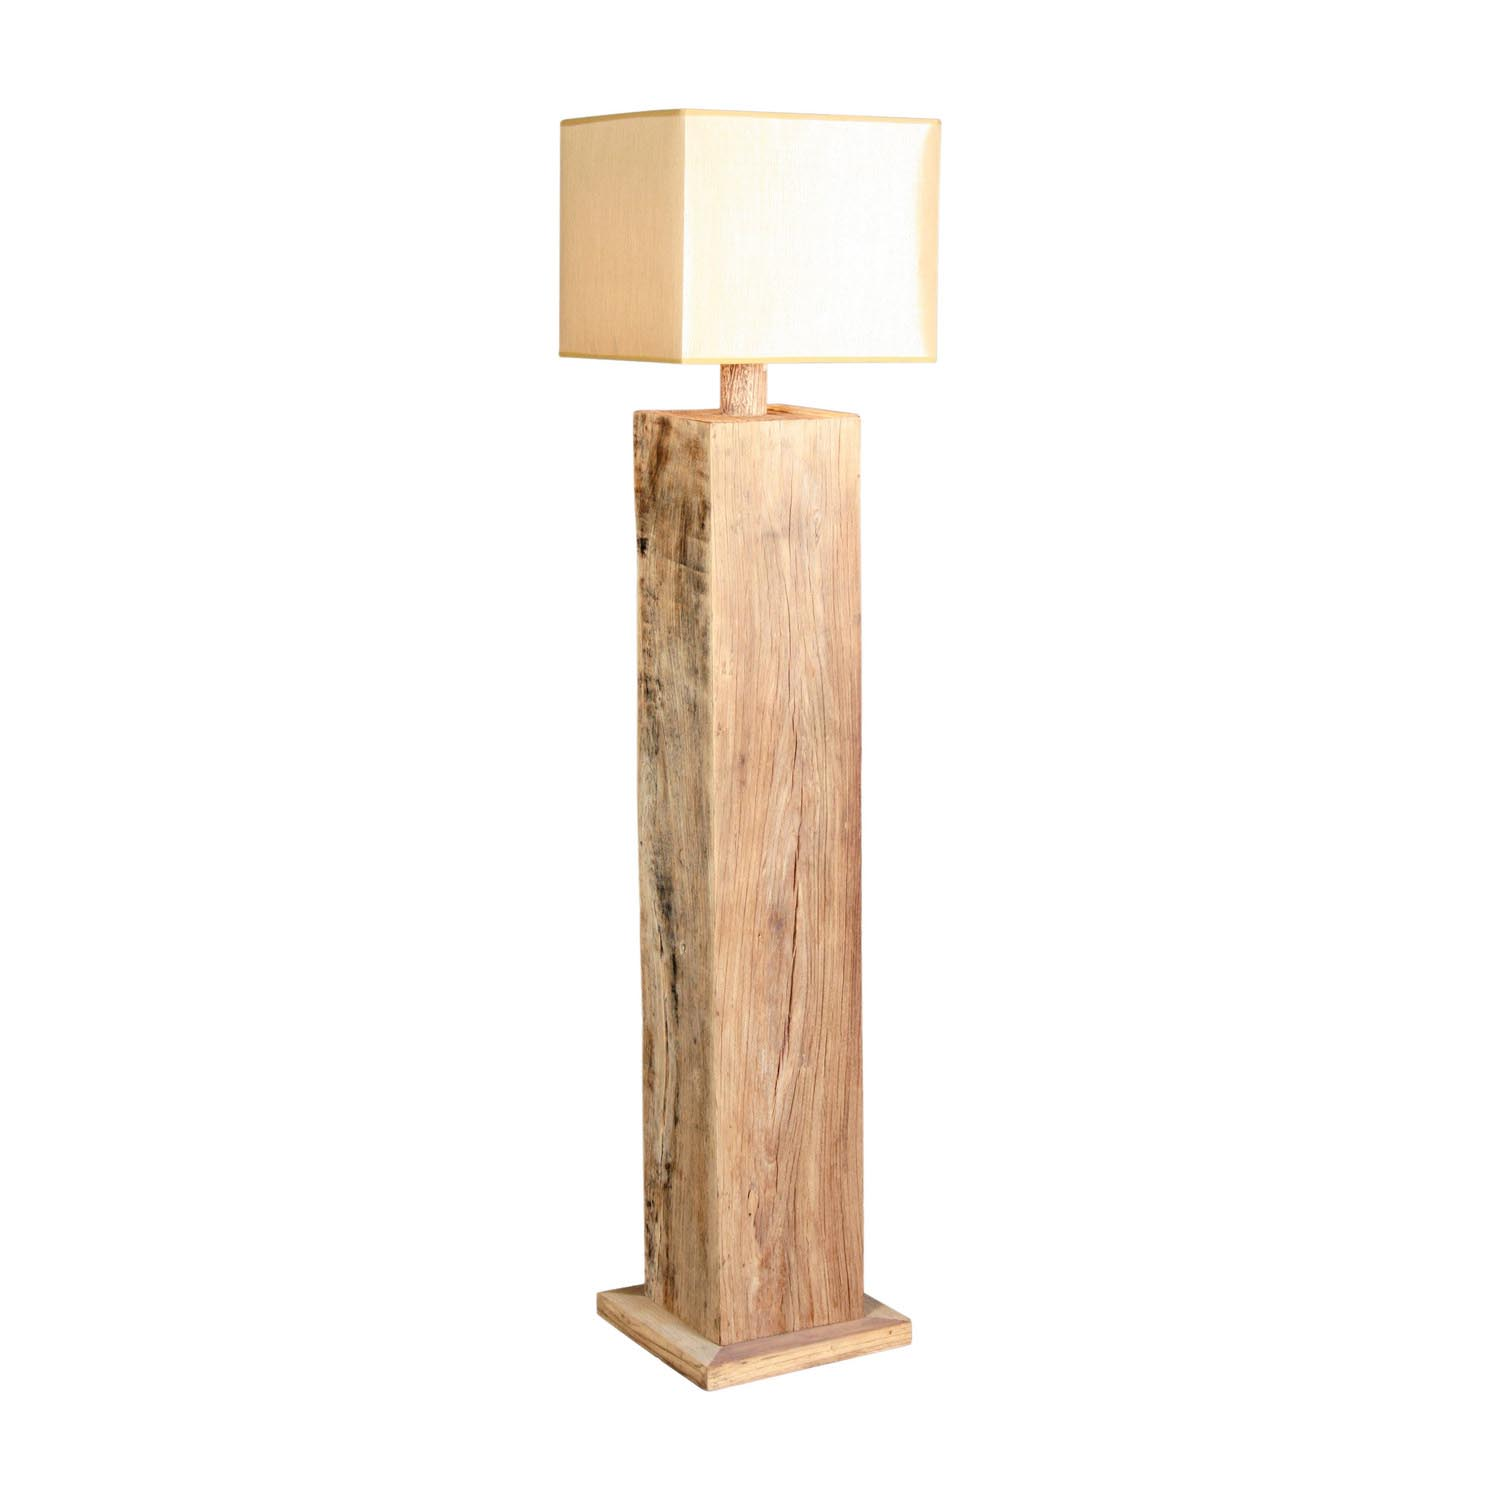 Ikea Floor Lamp Base: Wooden Floor Lamps IKEA,Lighting